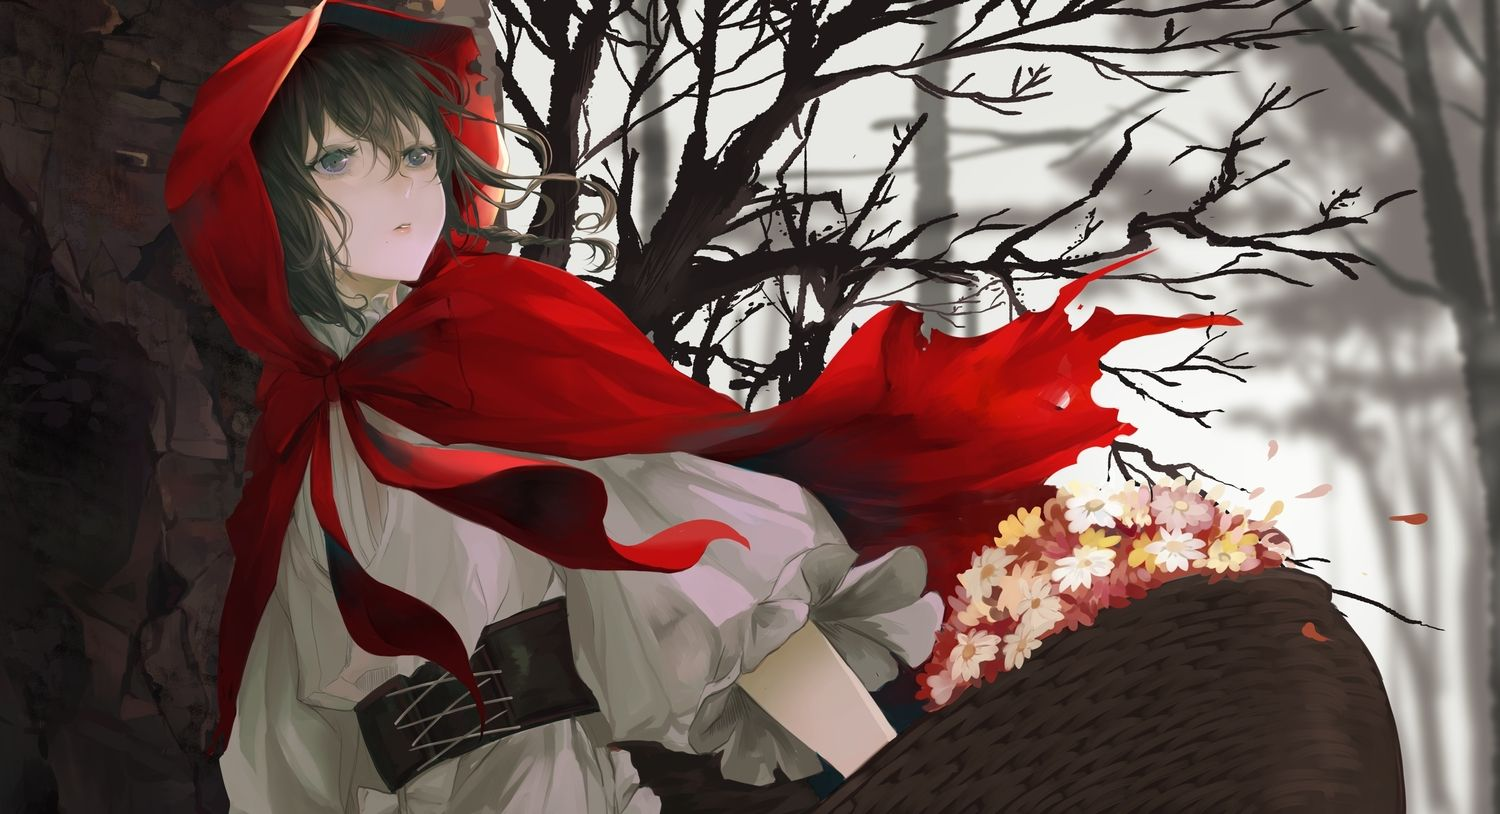 Pin By Howlermk On Girls 3 Red Riding Hood Art Anime Backgrounds Wallpapers Thanksgiving Wallpaper